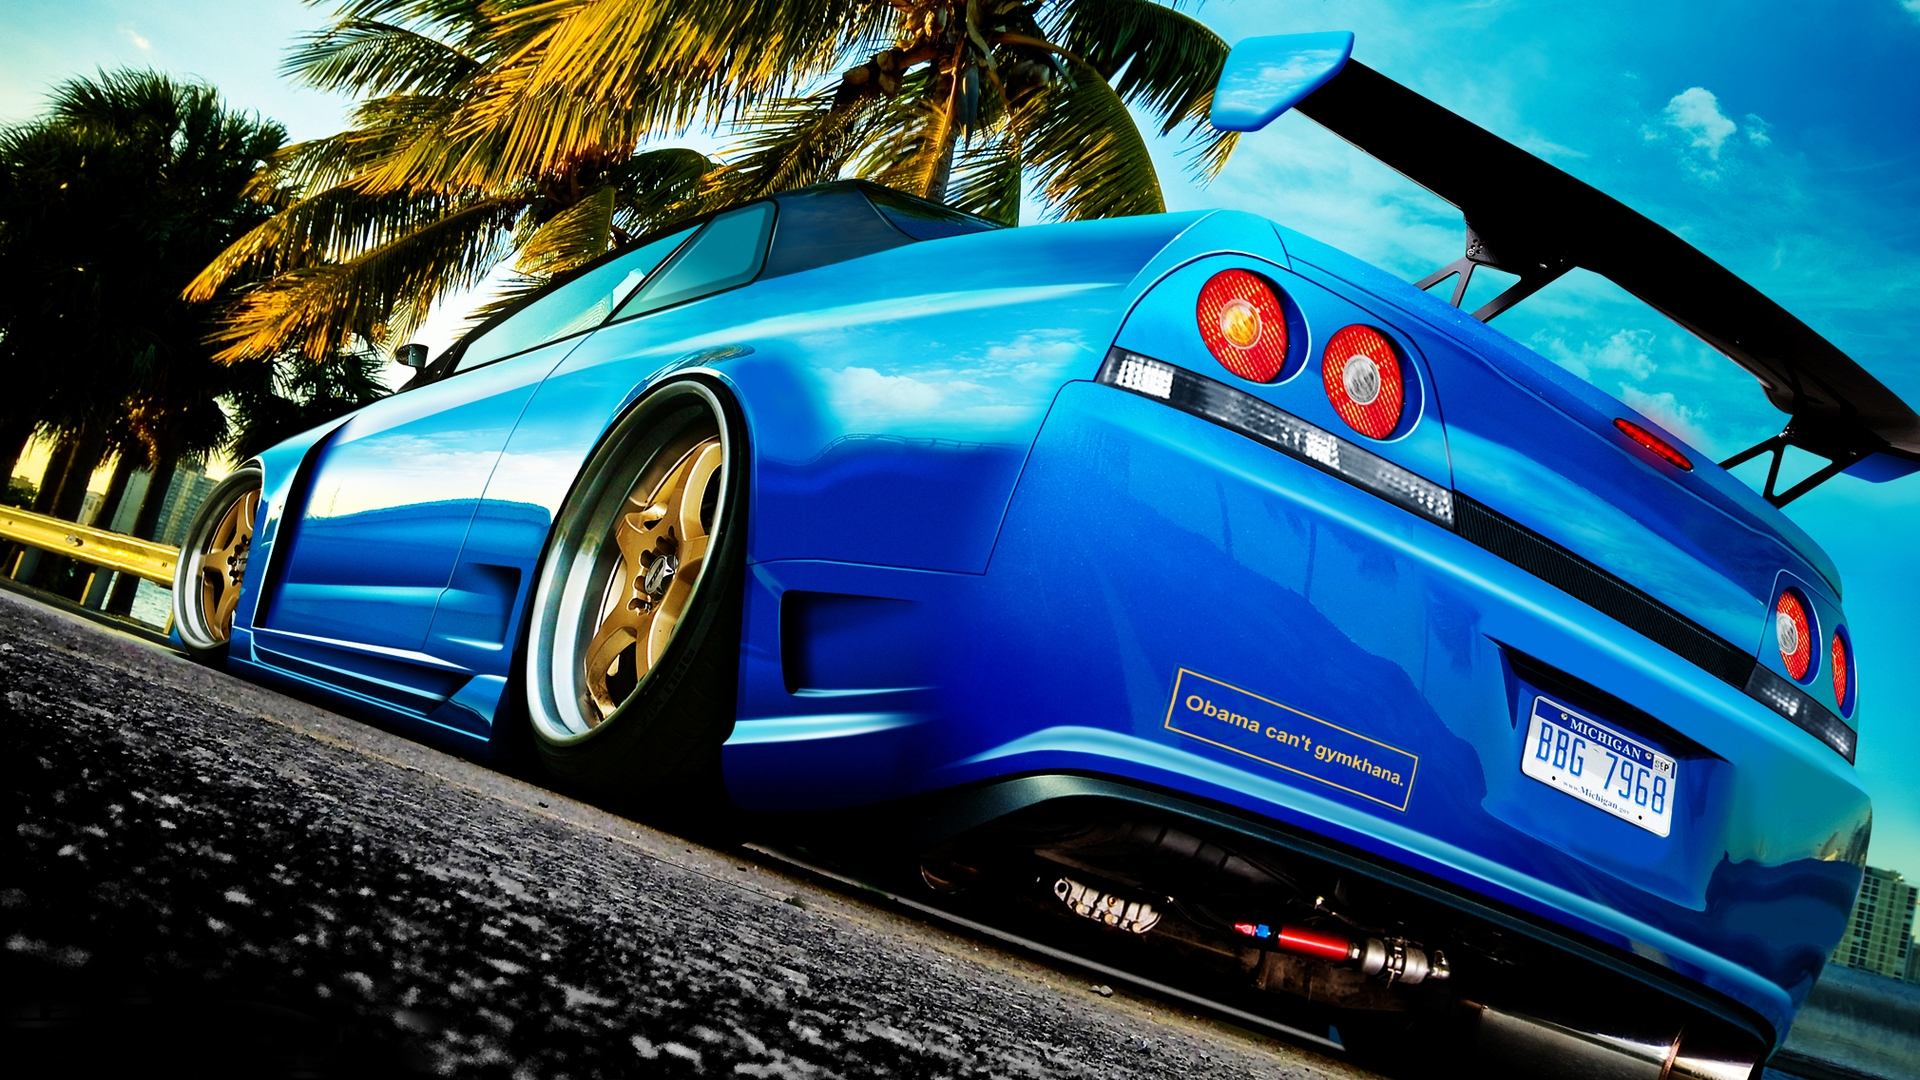 Nissan Skyline Wallpaper Hd 1920x1080